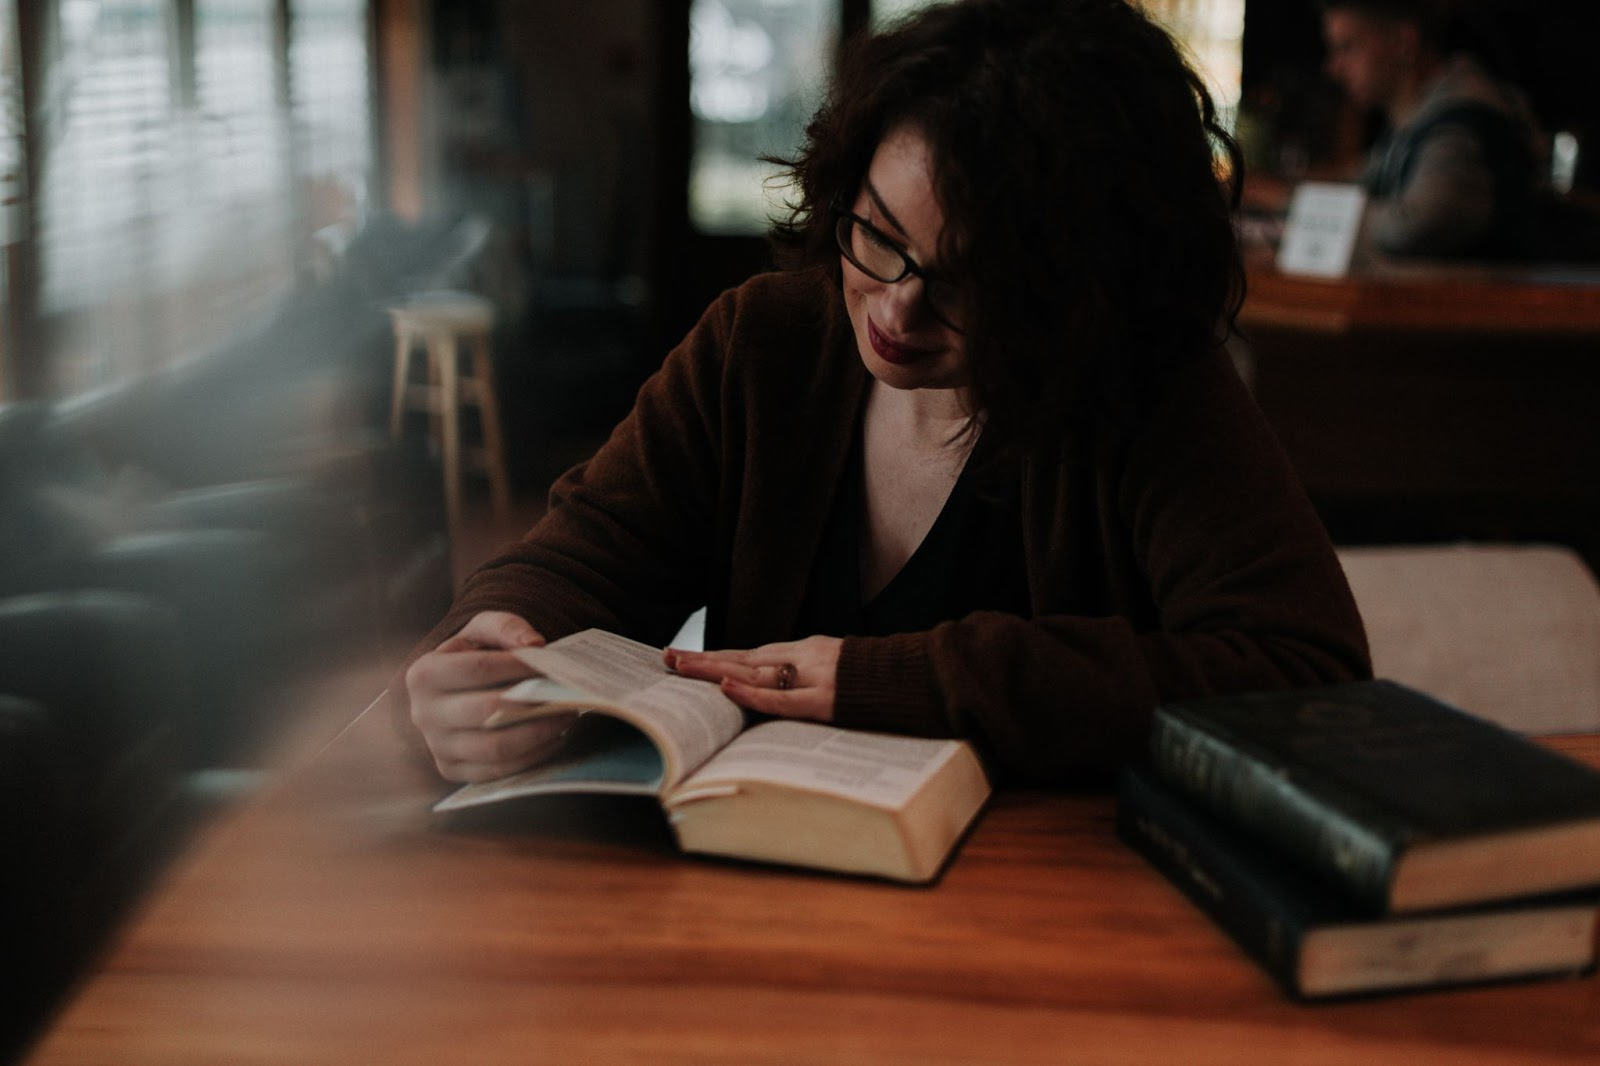 Woman reading scriptures in a cafe